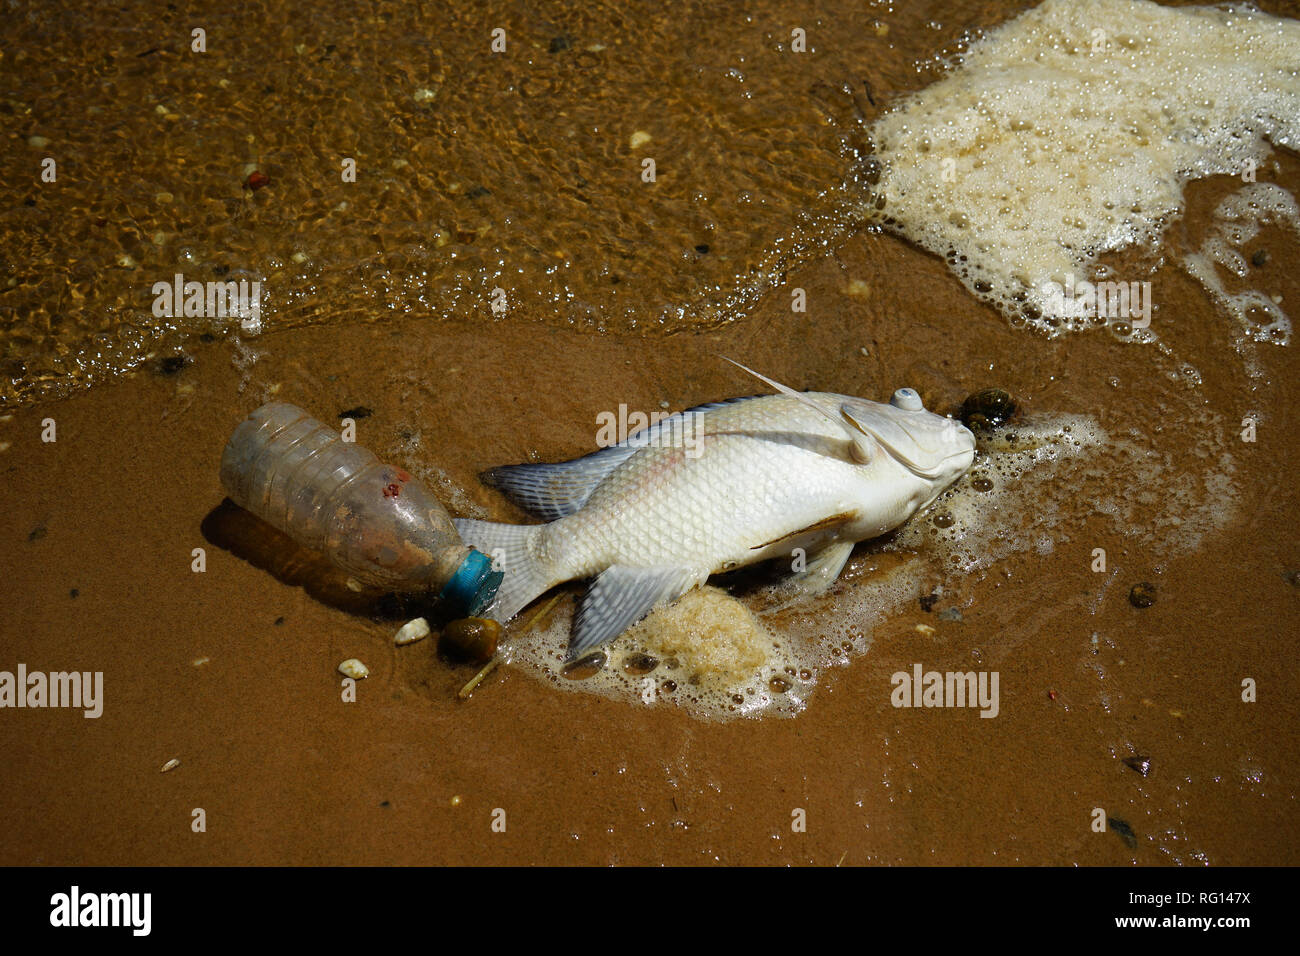 Dead fish and plastic bottle on beach - Stock Image